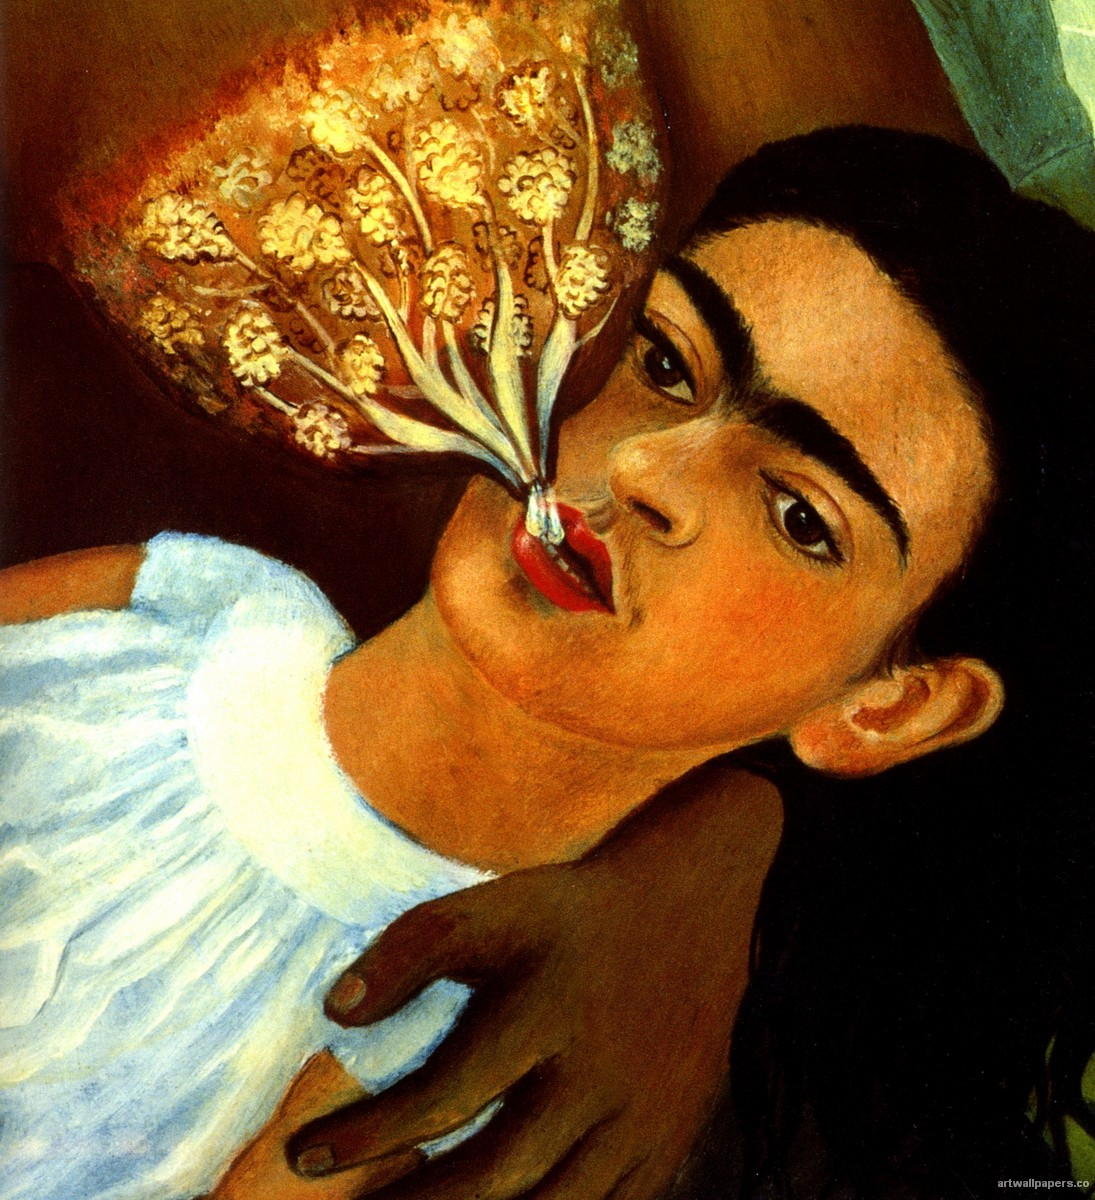 frida kahlo art essay Artist, feminist, rebel — frida kahlo is a world-renowned mexican painter  known for her shocking self-portaits filled with painful imagery friday kohl  married.